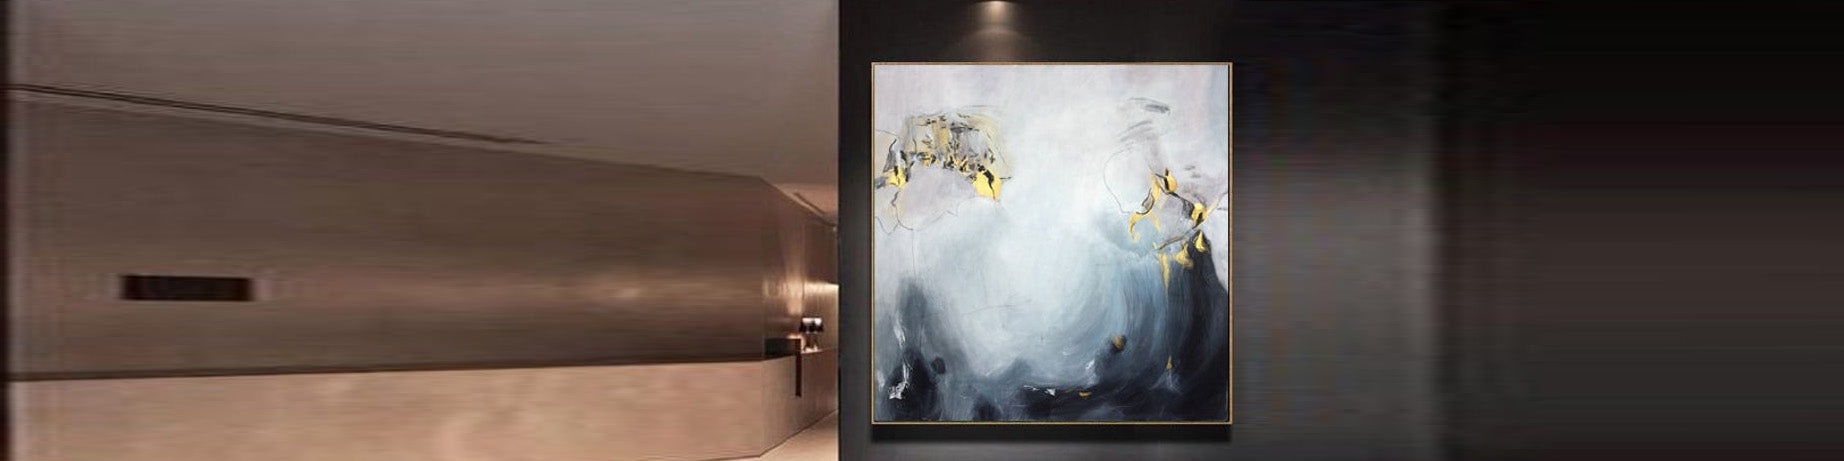 How to decorate a hallway with original art oil